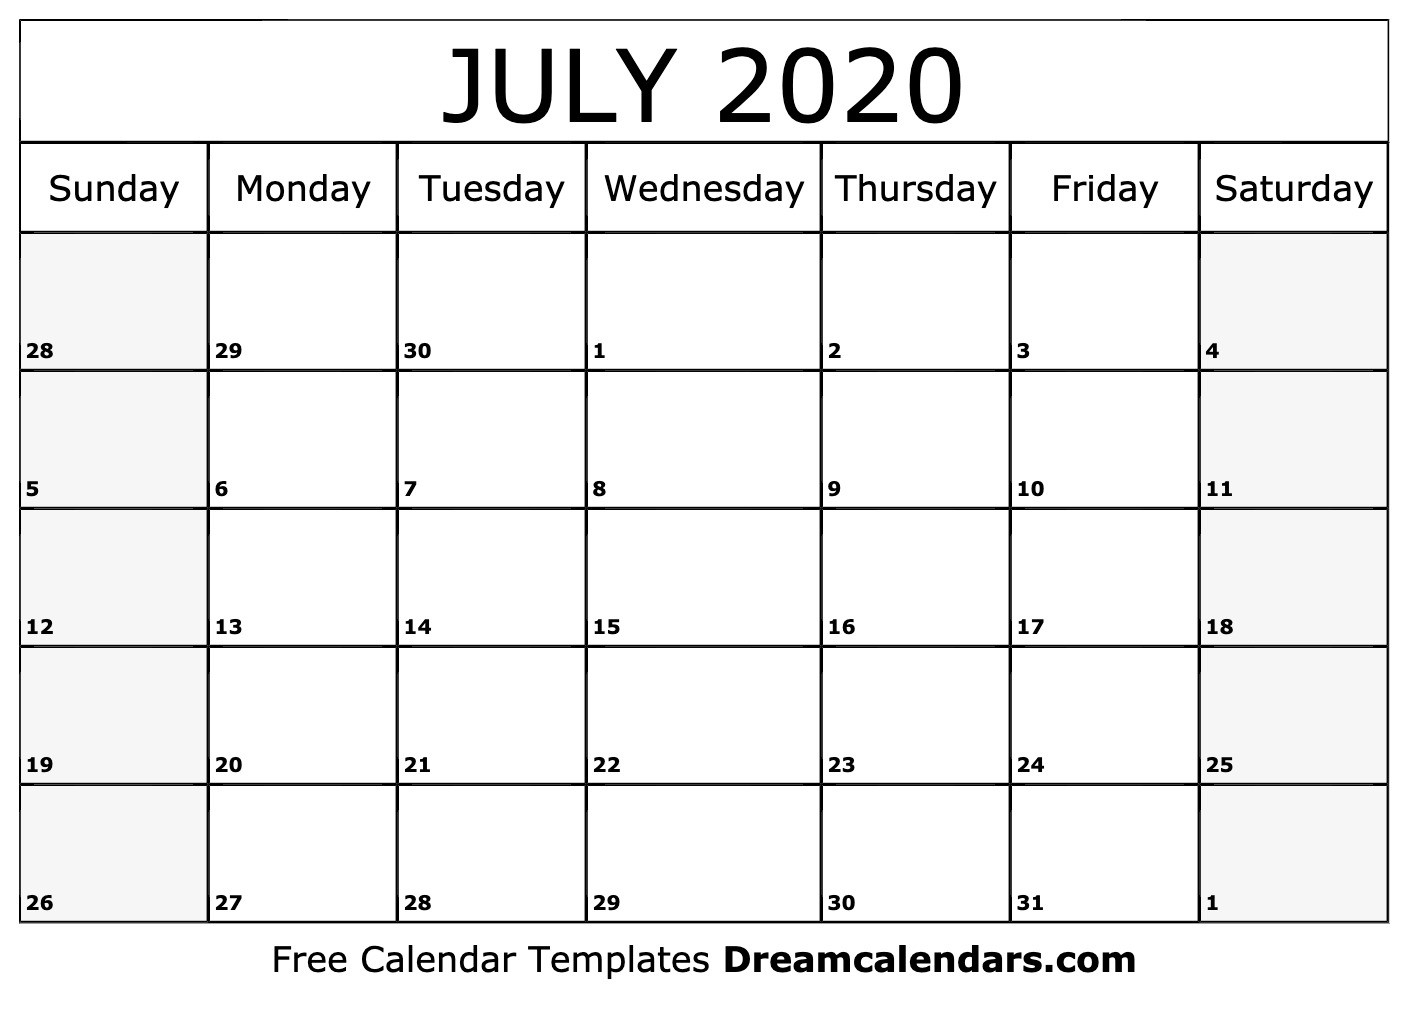 Free Blank July 2020 Printable Calendar-5 Day Calander Template July 2020